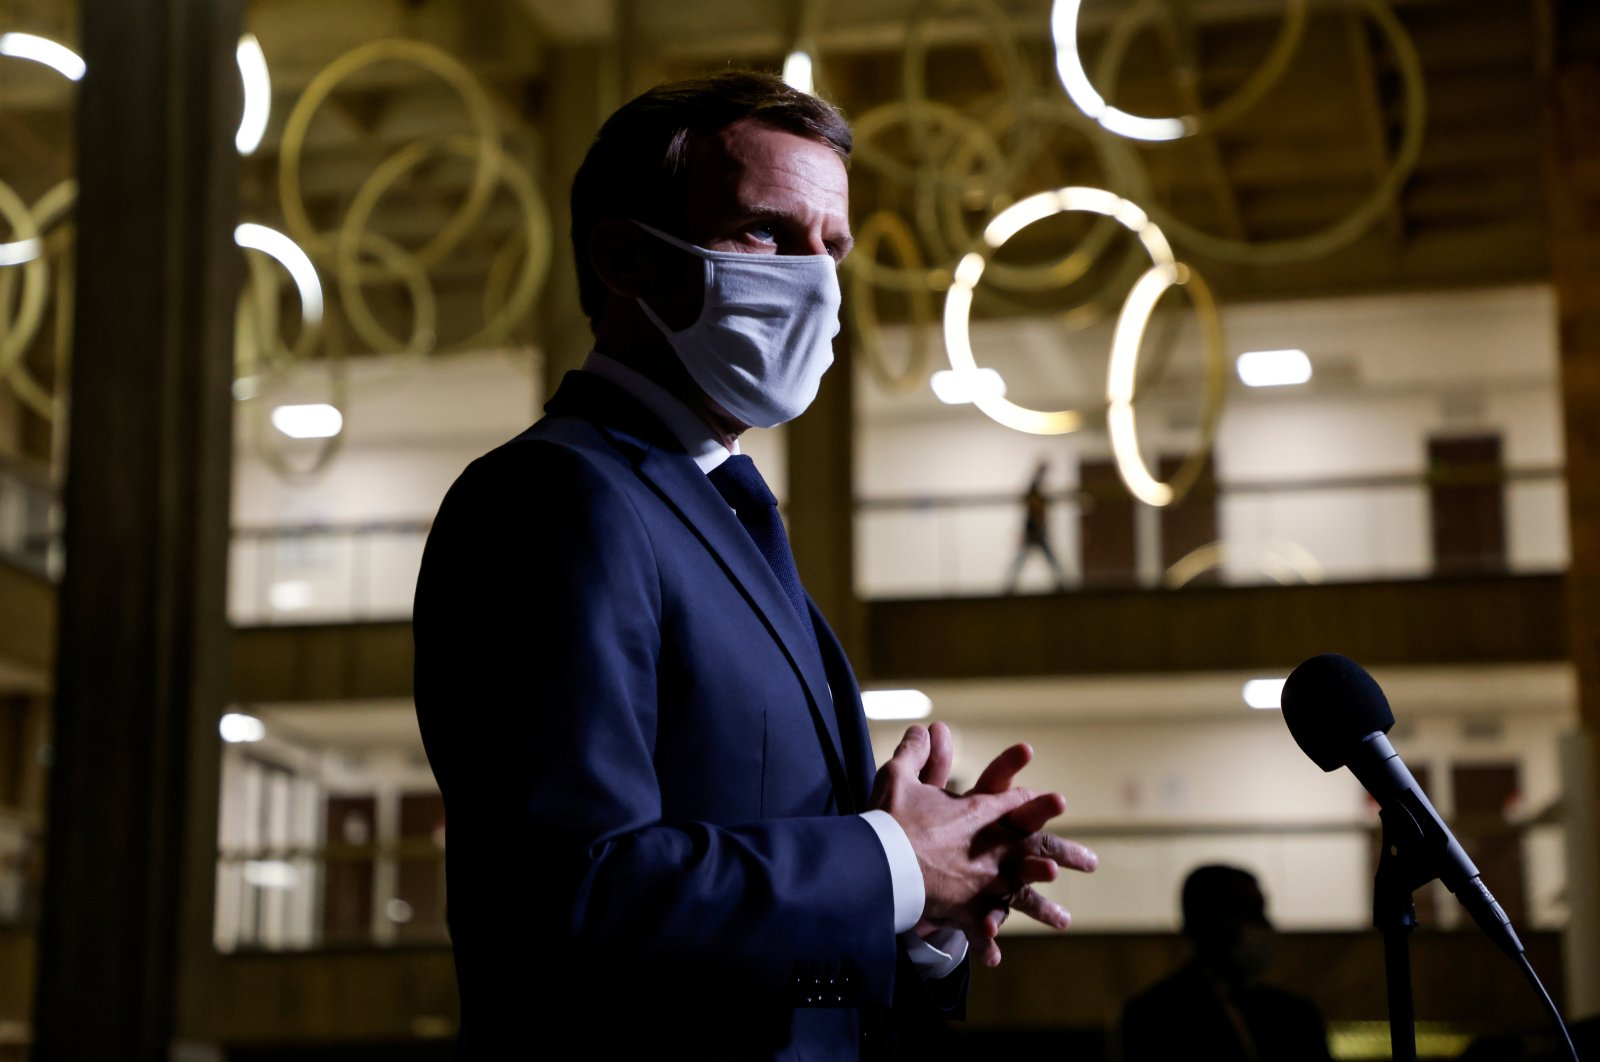 French President Emmanuel Macron wearing a face mask delivers a speech at the Seine-Saint-Denis prefecture headquarters in Bobigny, near Paris, France, Oct. 20, 2020. (Reuters Photo)